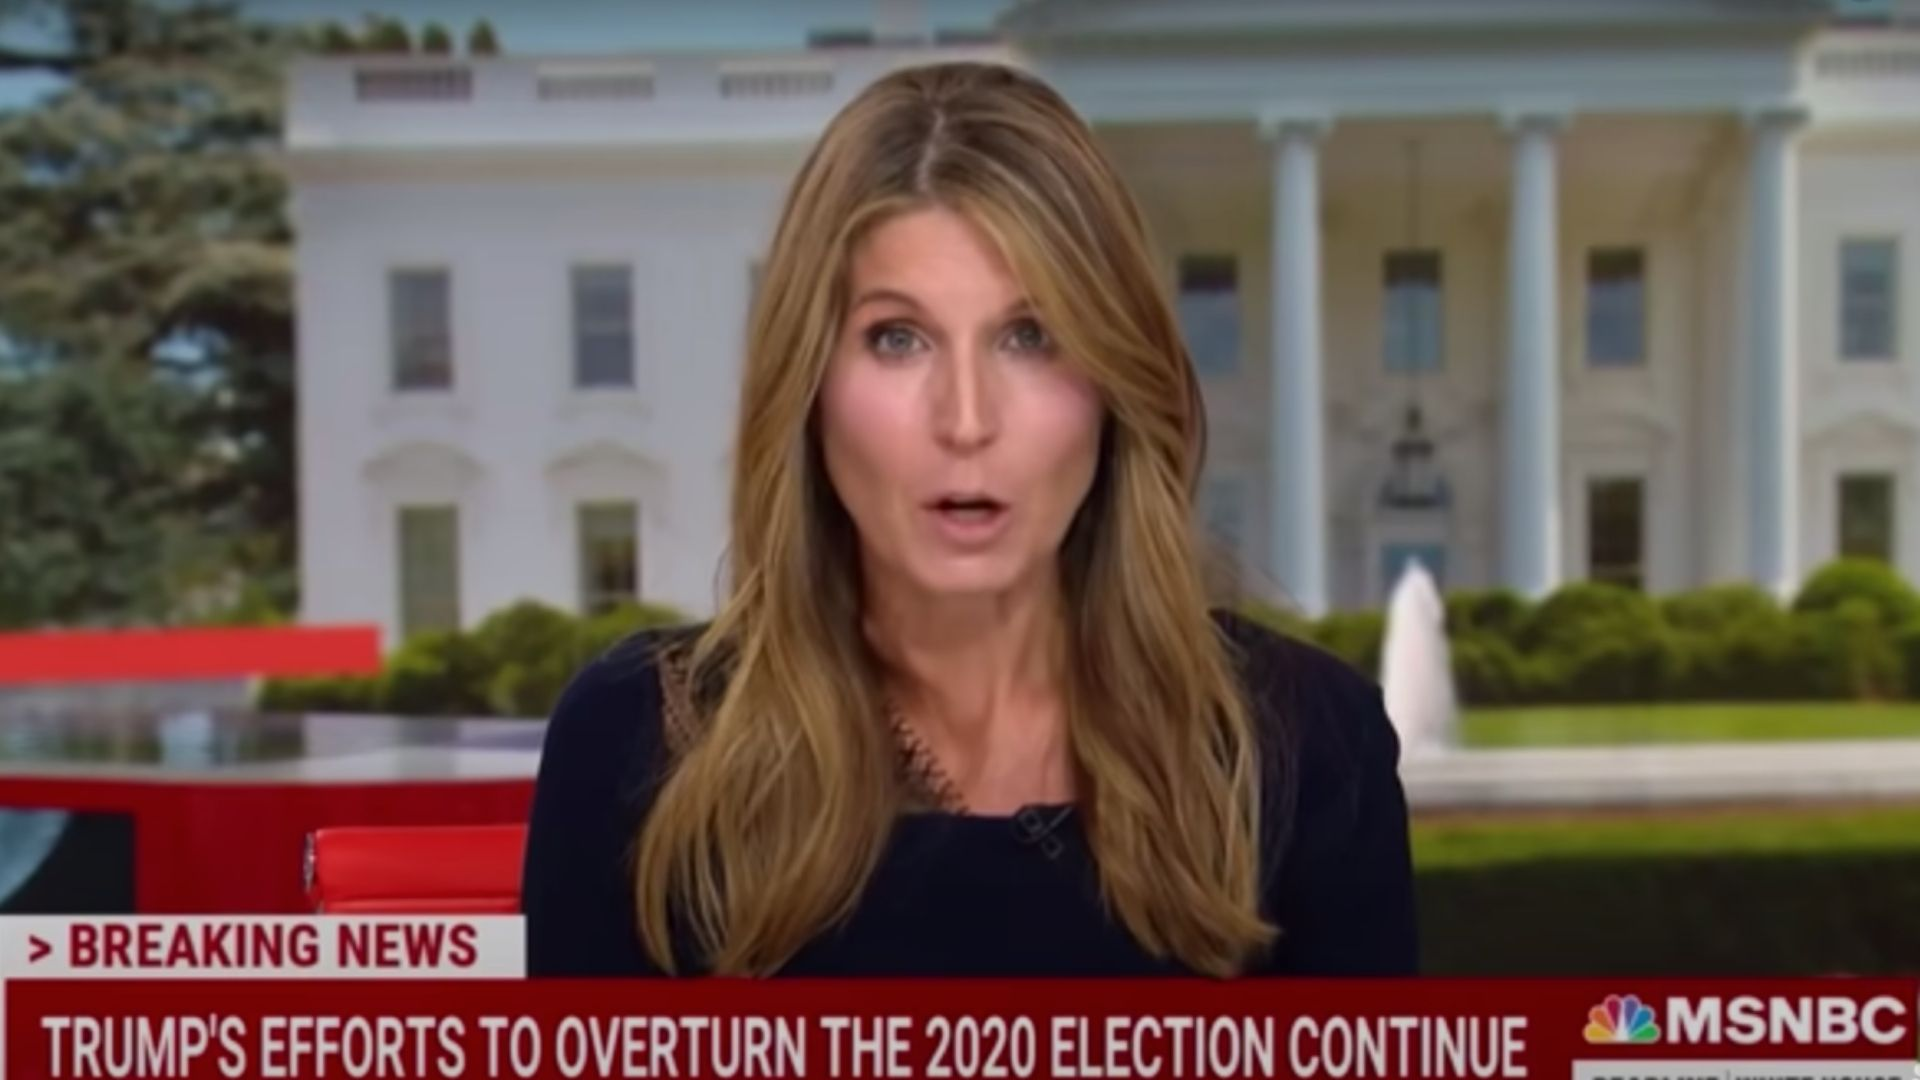 MSNBC's Nicolle Wallace Insults 'Knuckle-Dragging Right', Calls 'Bullsh*t' On Steve Scalise